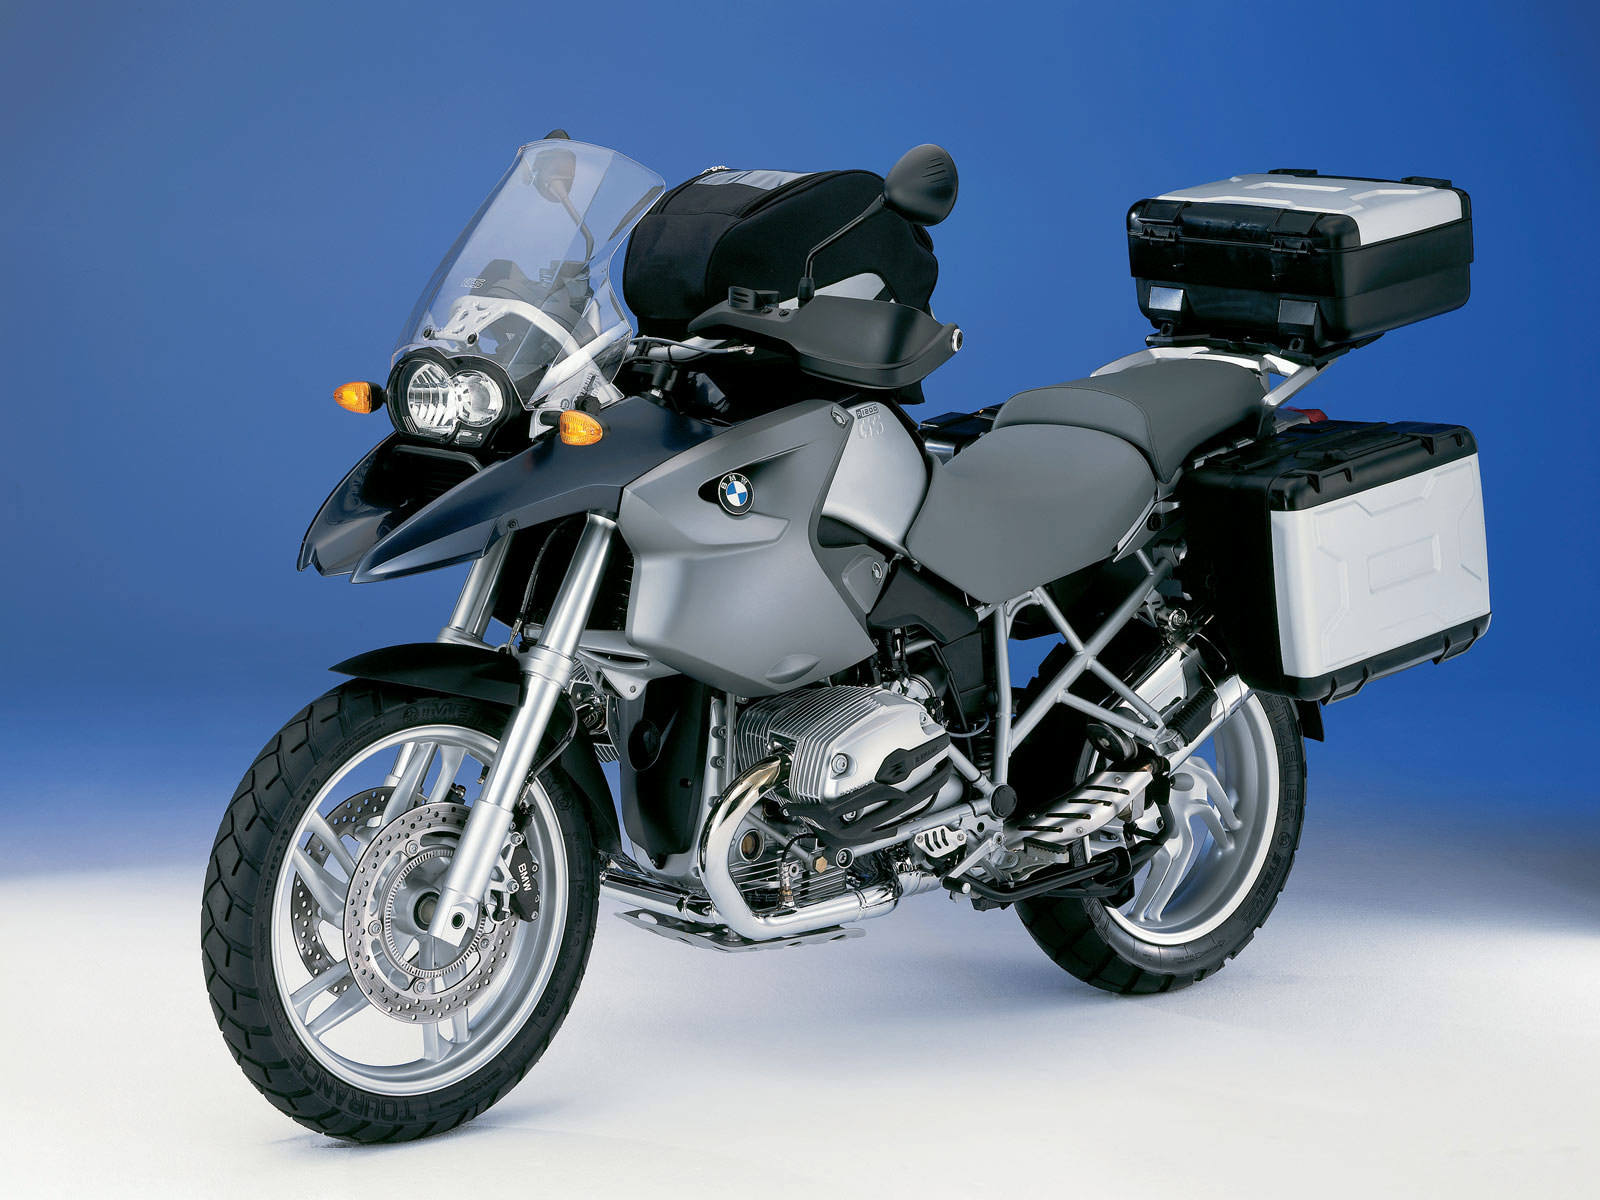 2004 BMW R1200GS Motorcycle Pictures, Insurance Information